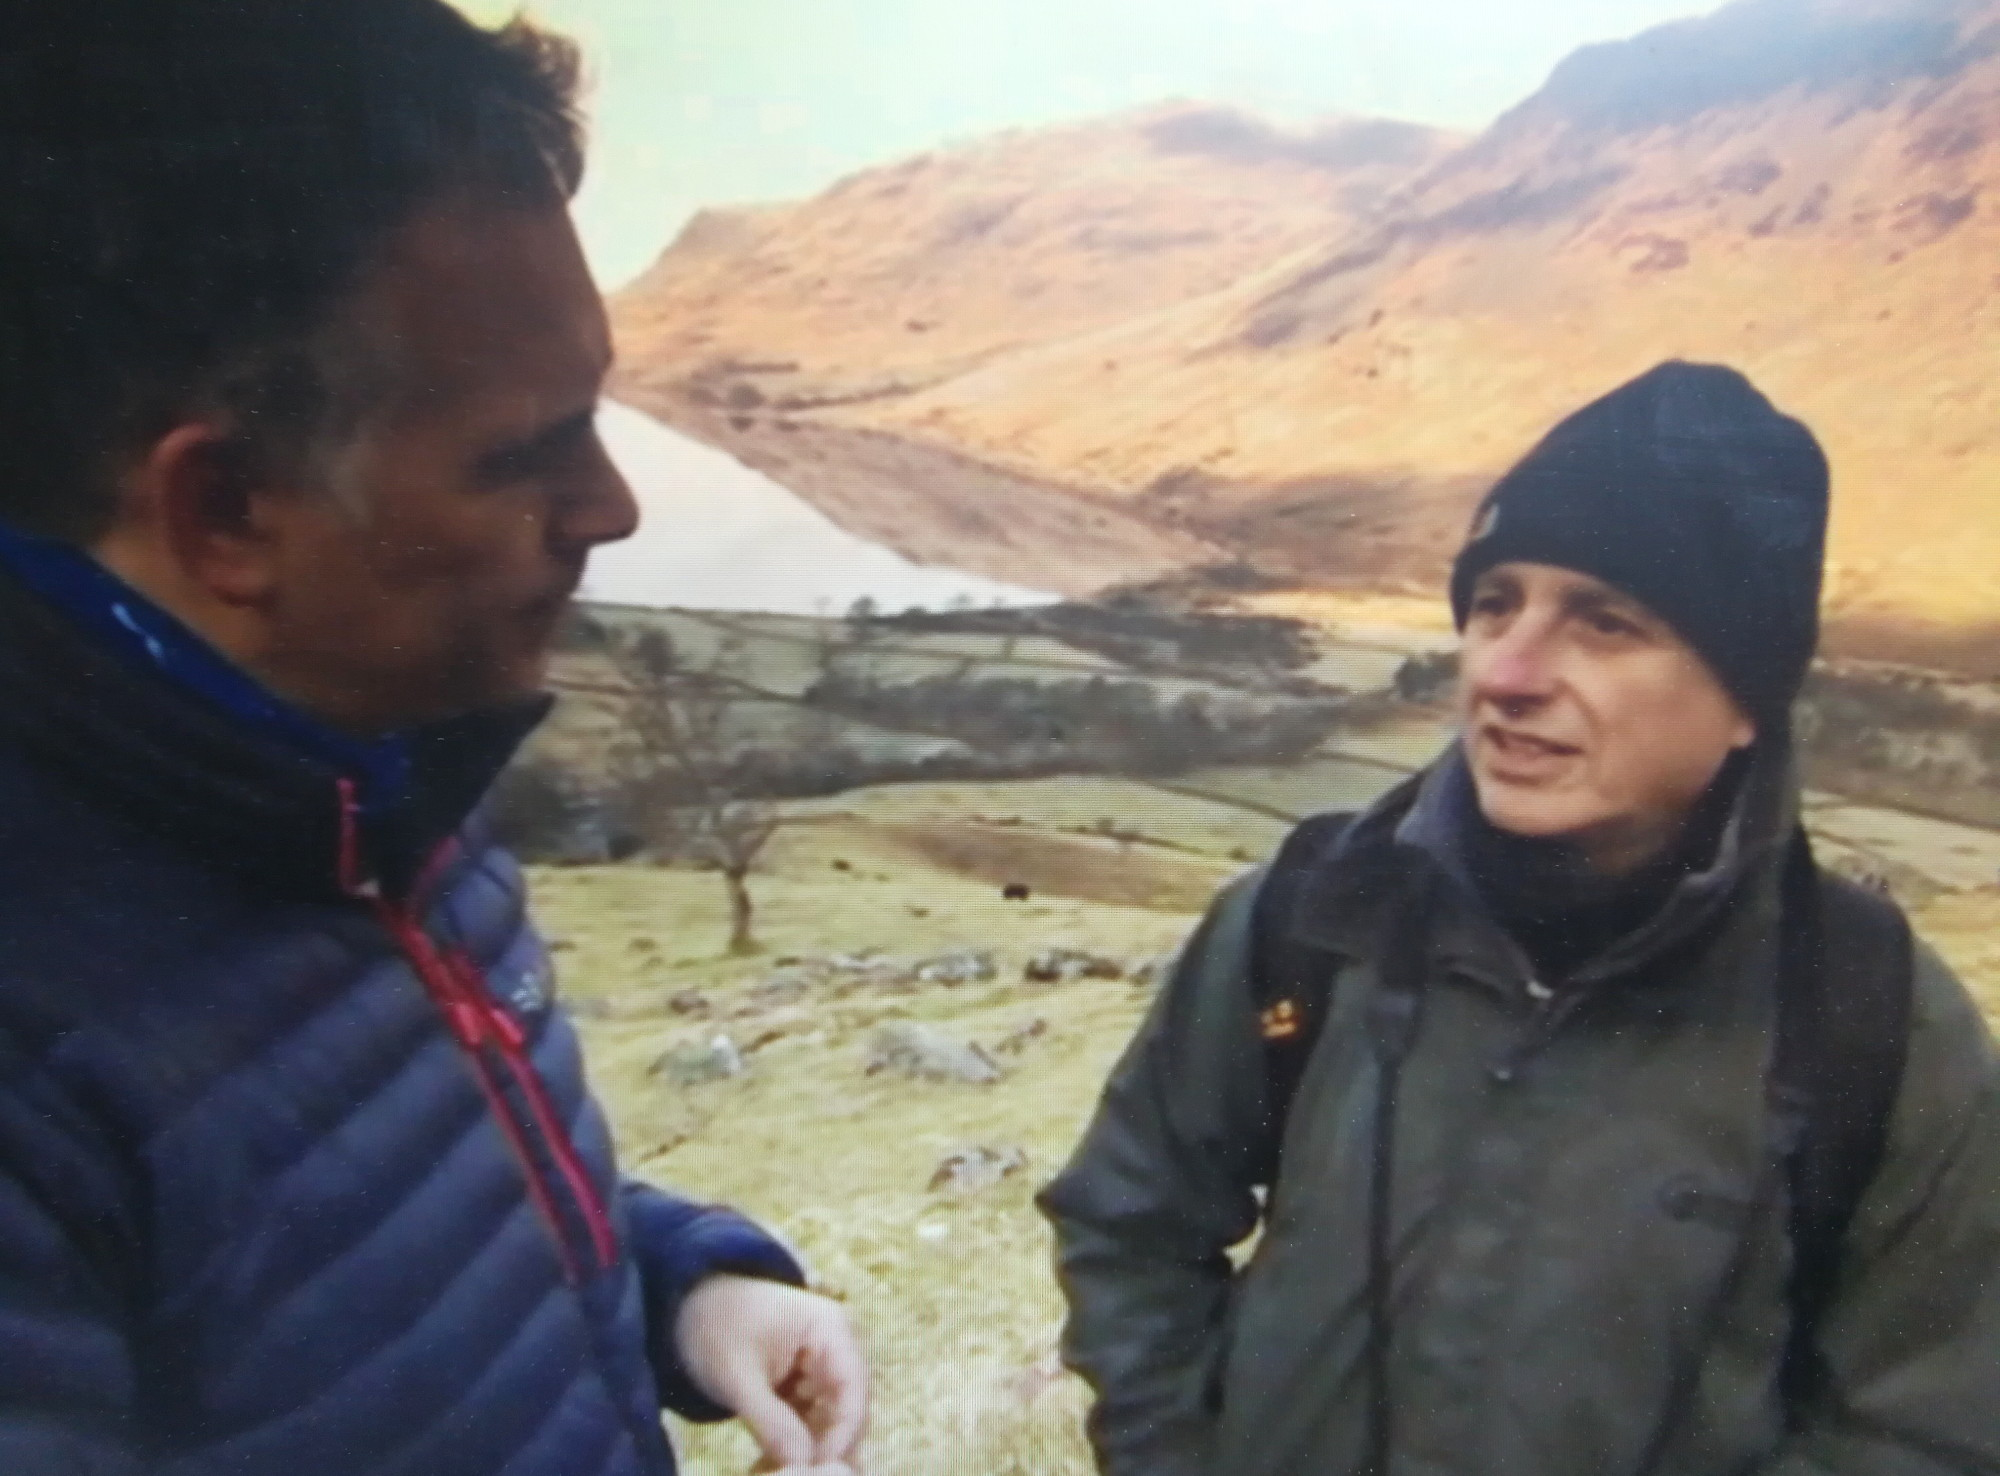 Lake district challenge for Sport Relief